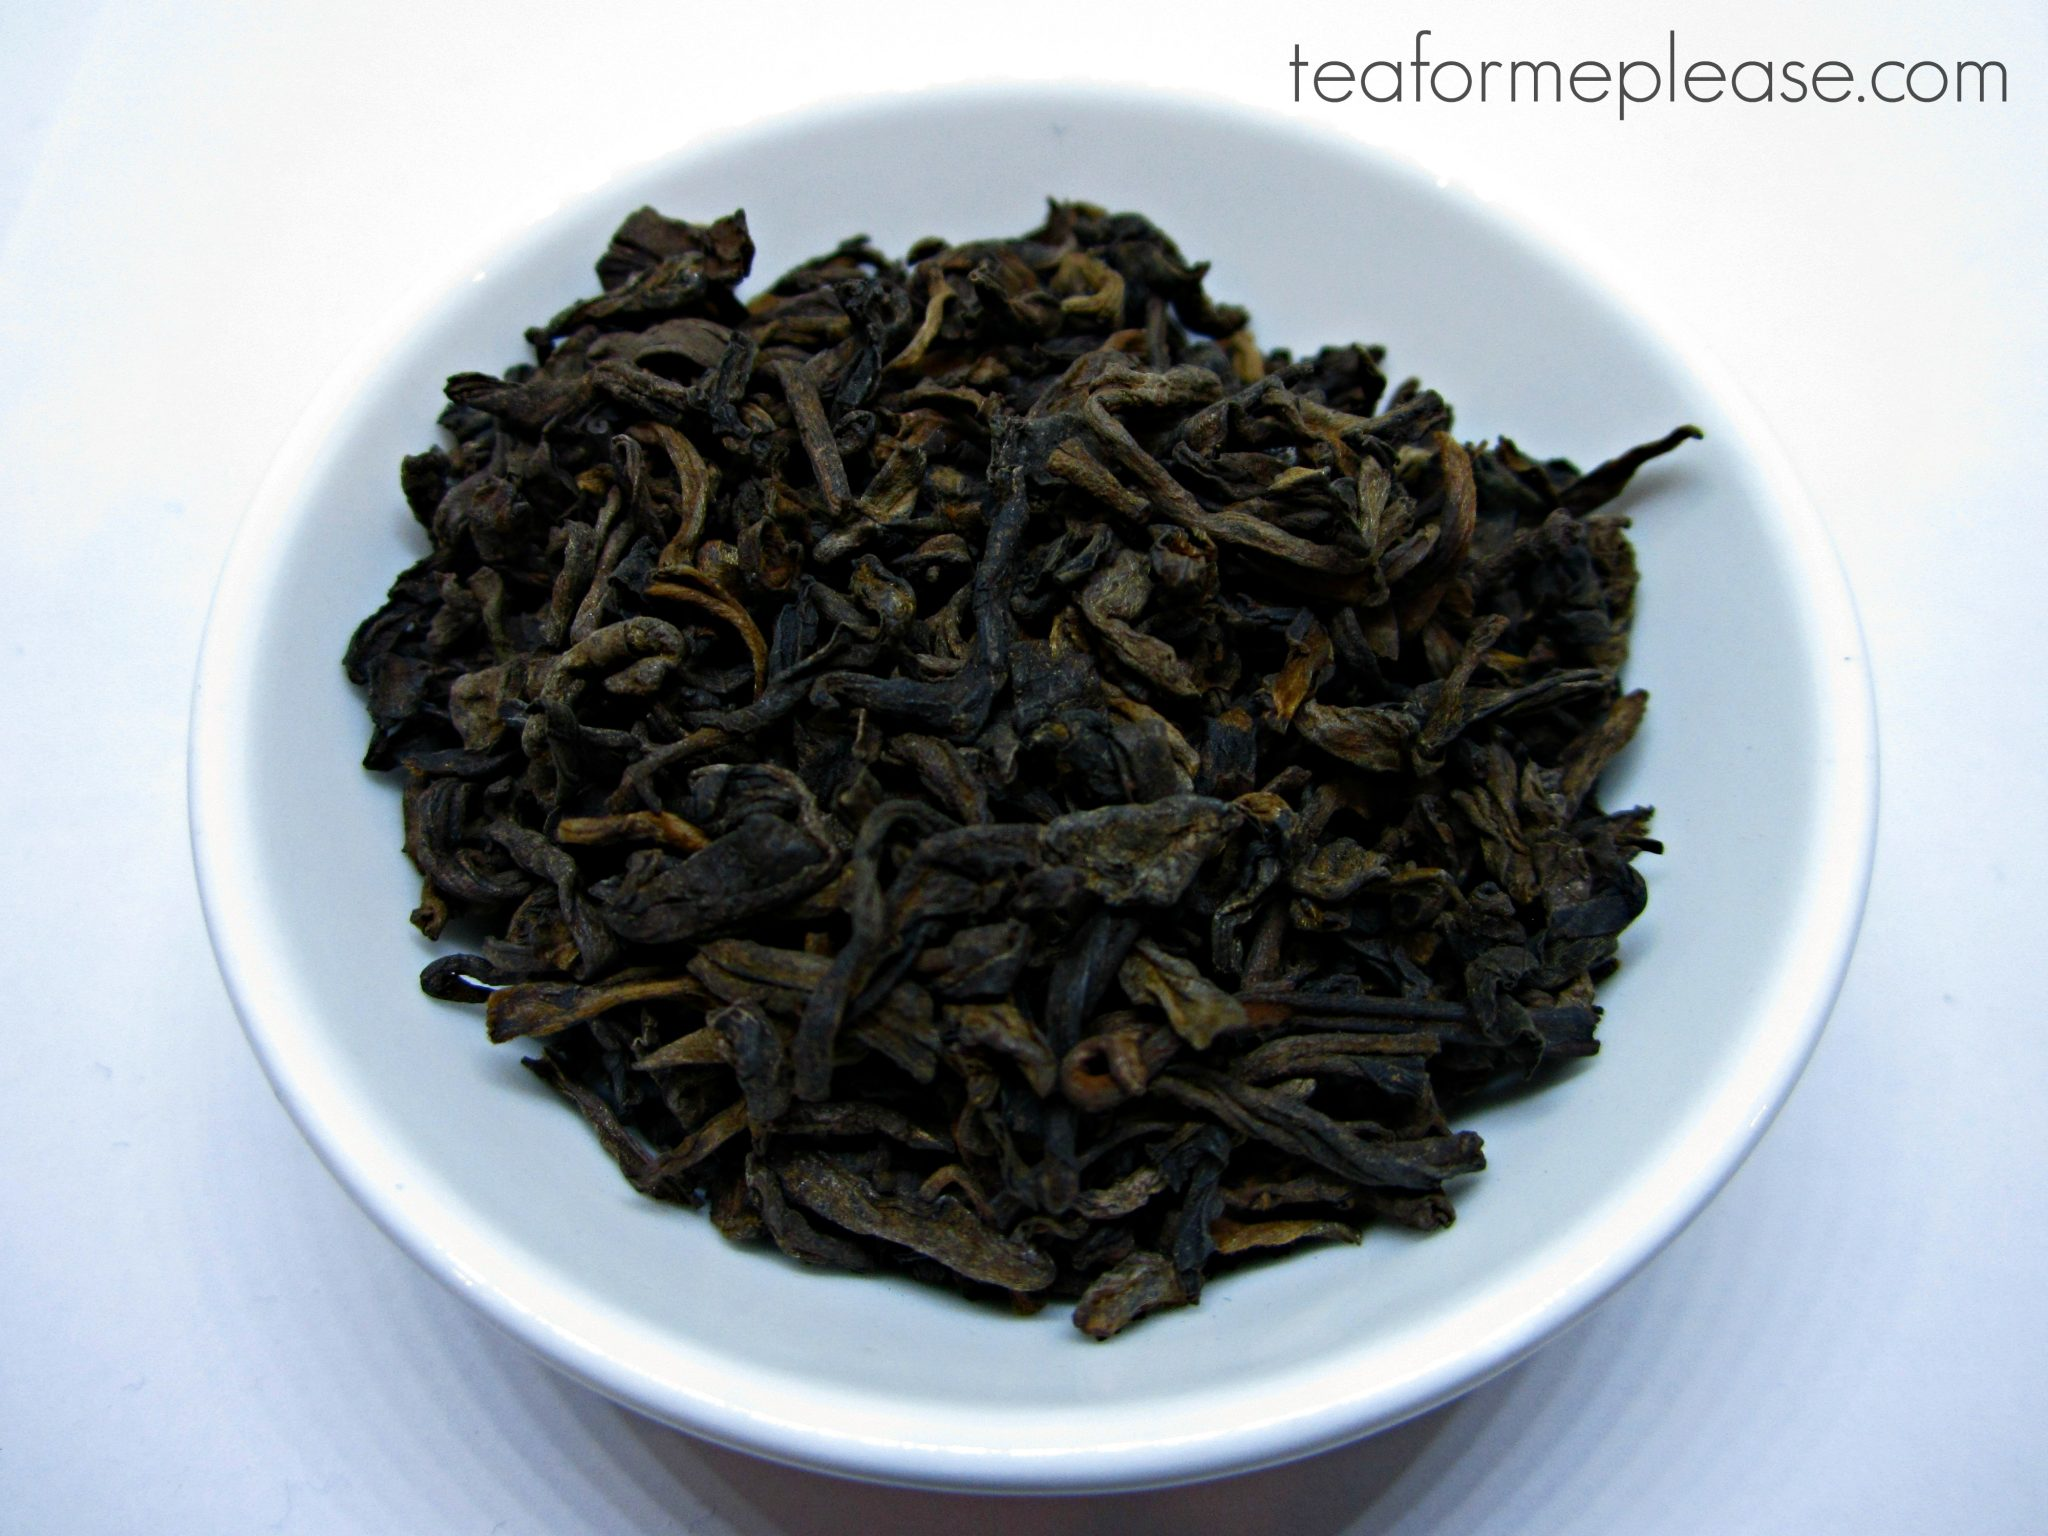 Rama Lama Bulang puerh tea leaves